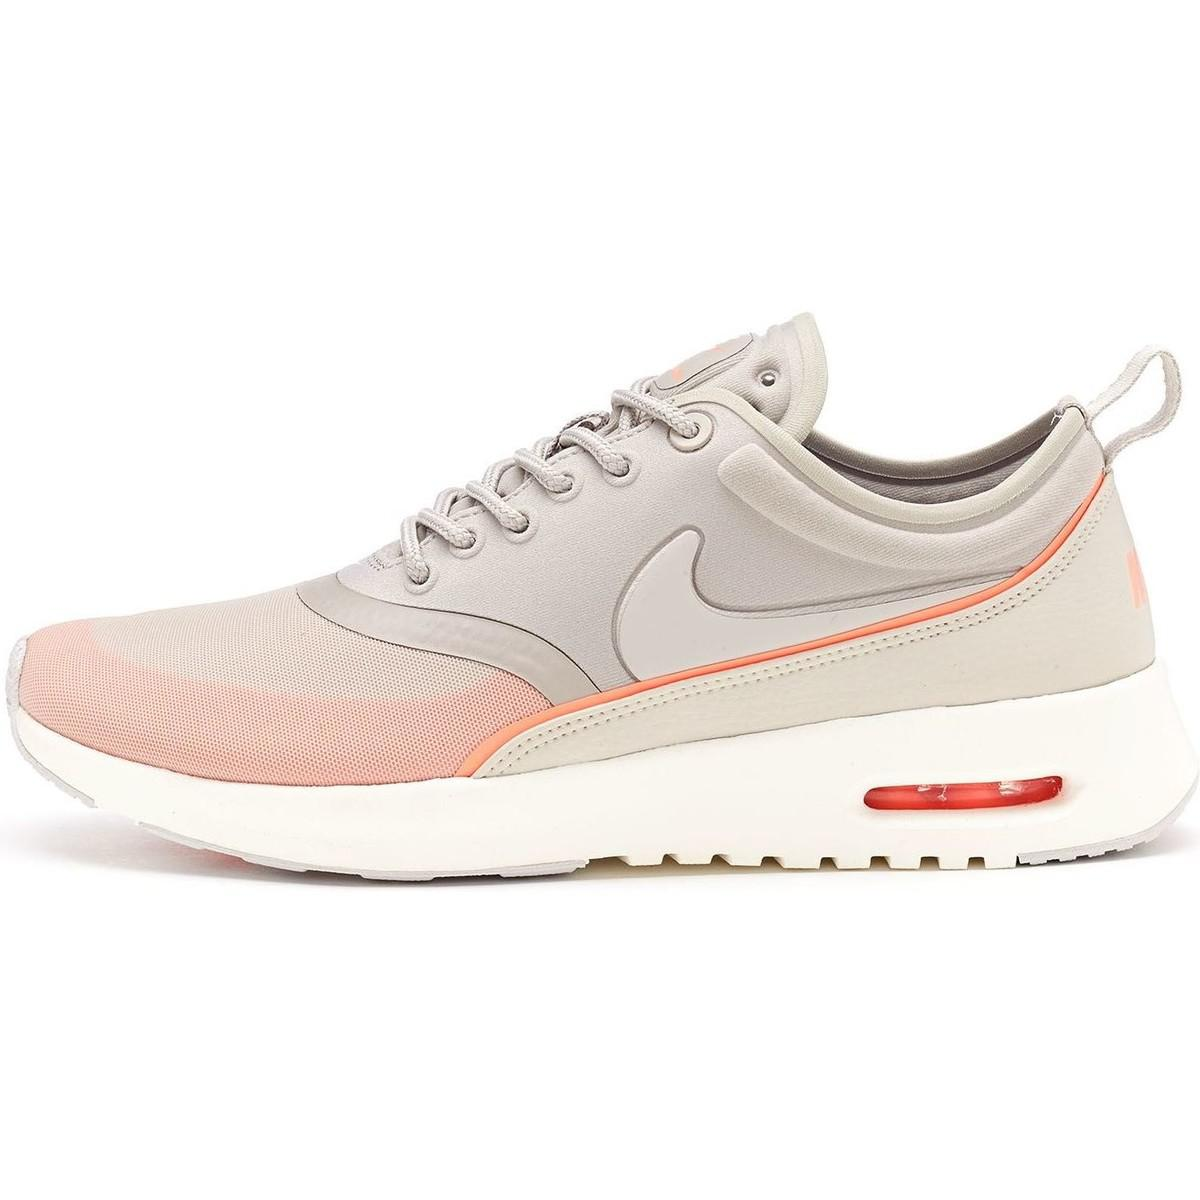 on sale 71a94 7b3c1 ... get gallery. previously sold at spartoo womens saucony bullet womens nike  air max 3a704 e81dd